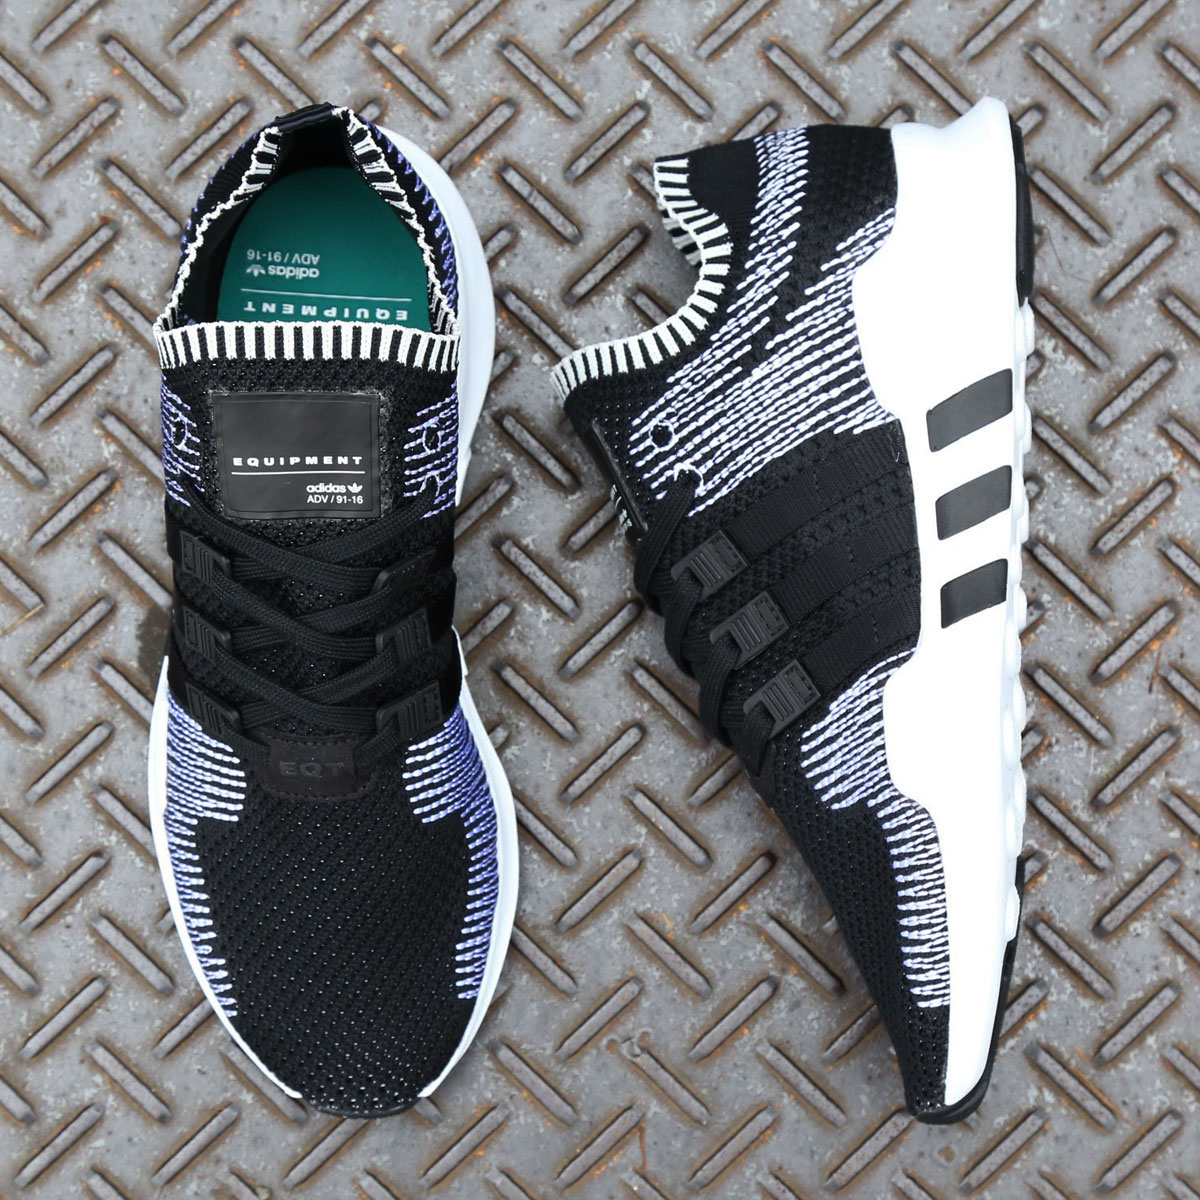 adidas Originals EQT SUPPORT ADV PK (アディダス オリジナルス EQT サポートADV PK)CORE BLACK/CORE BLACK/RUNNING WHITE【メンズ スニーカー】17FW-S